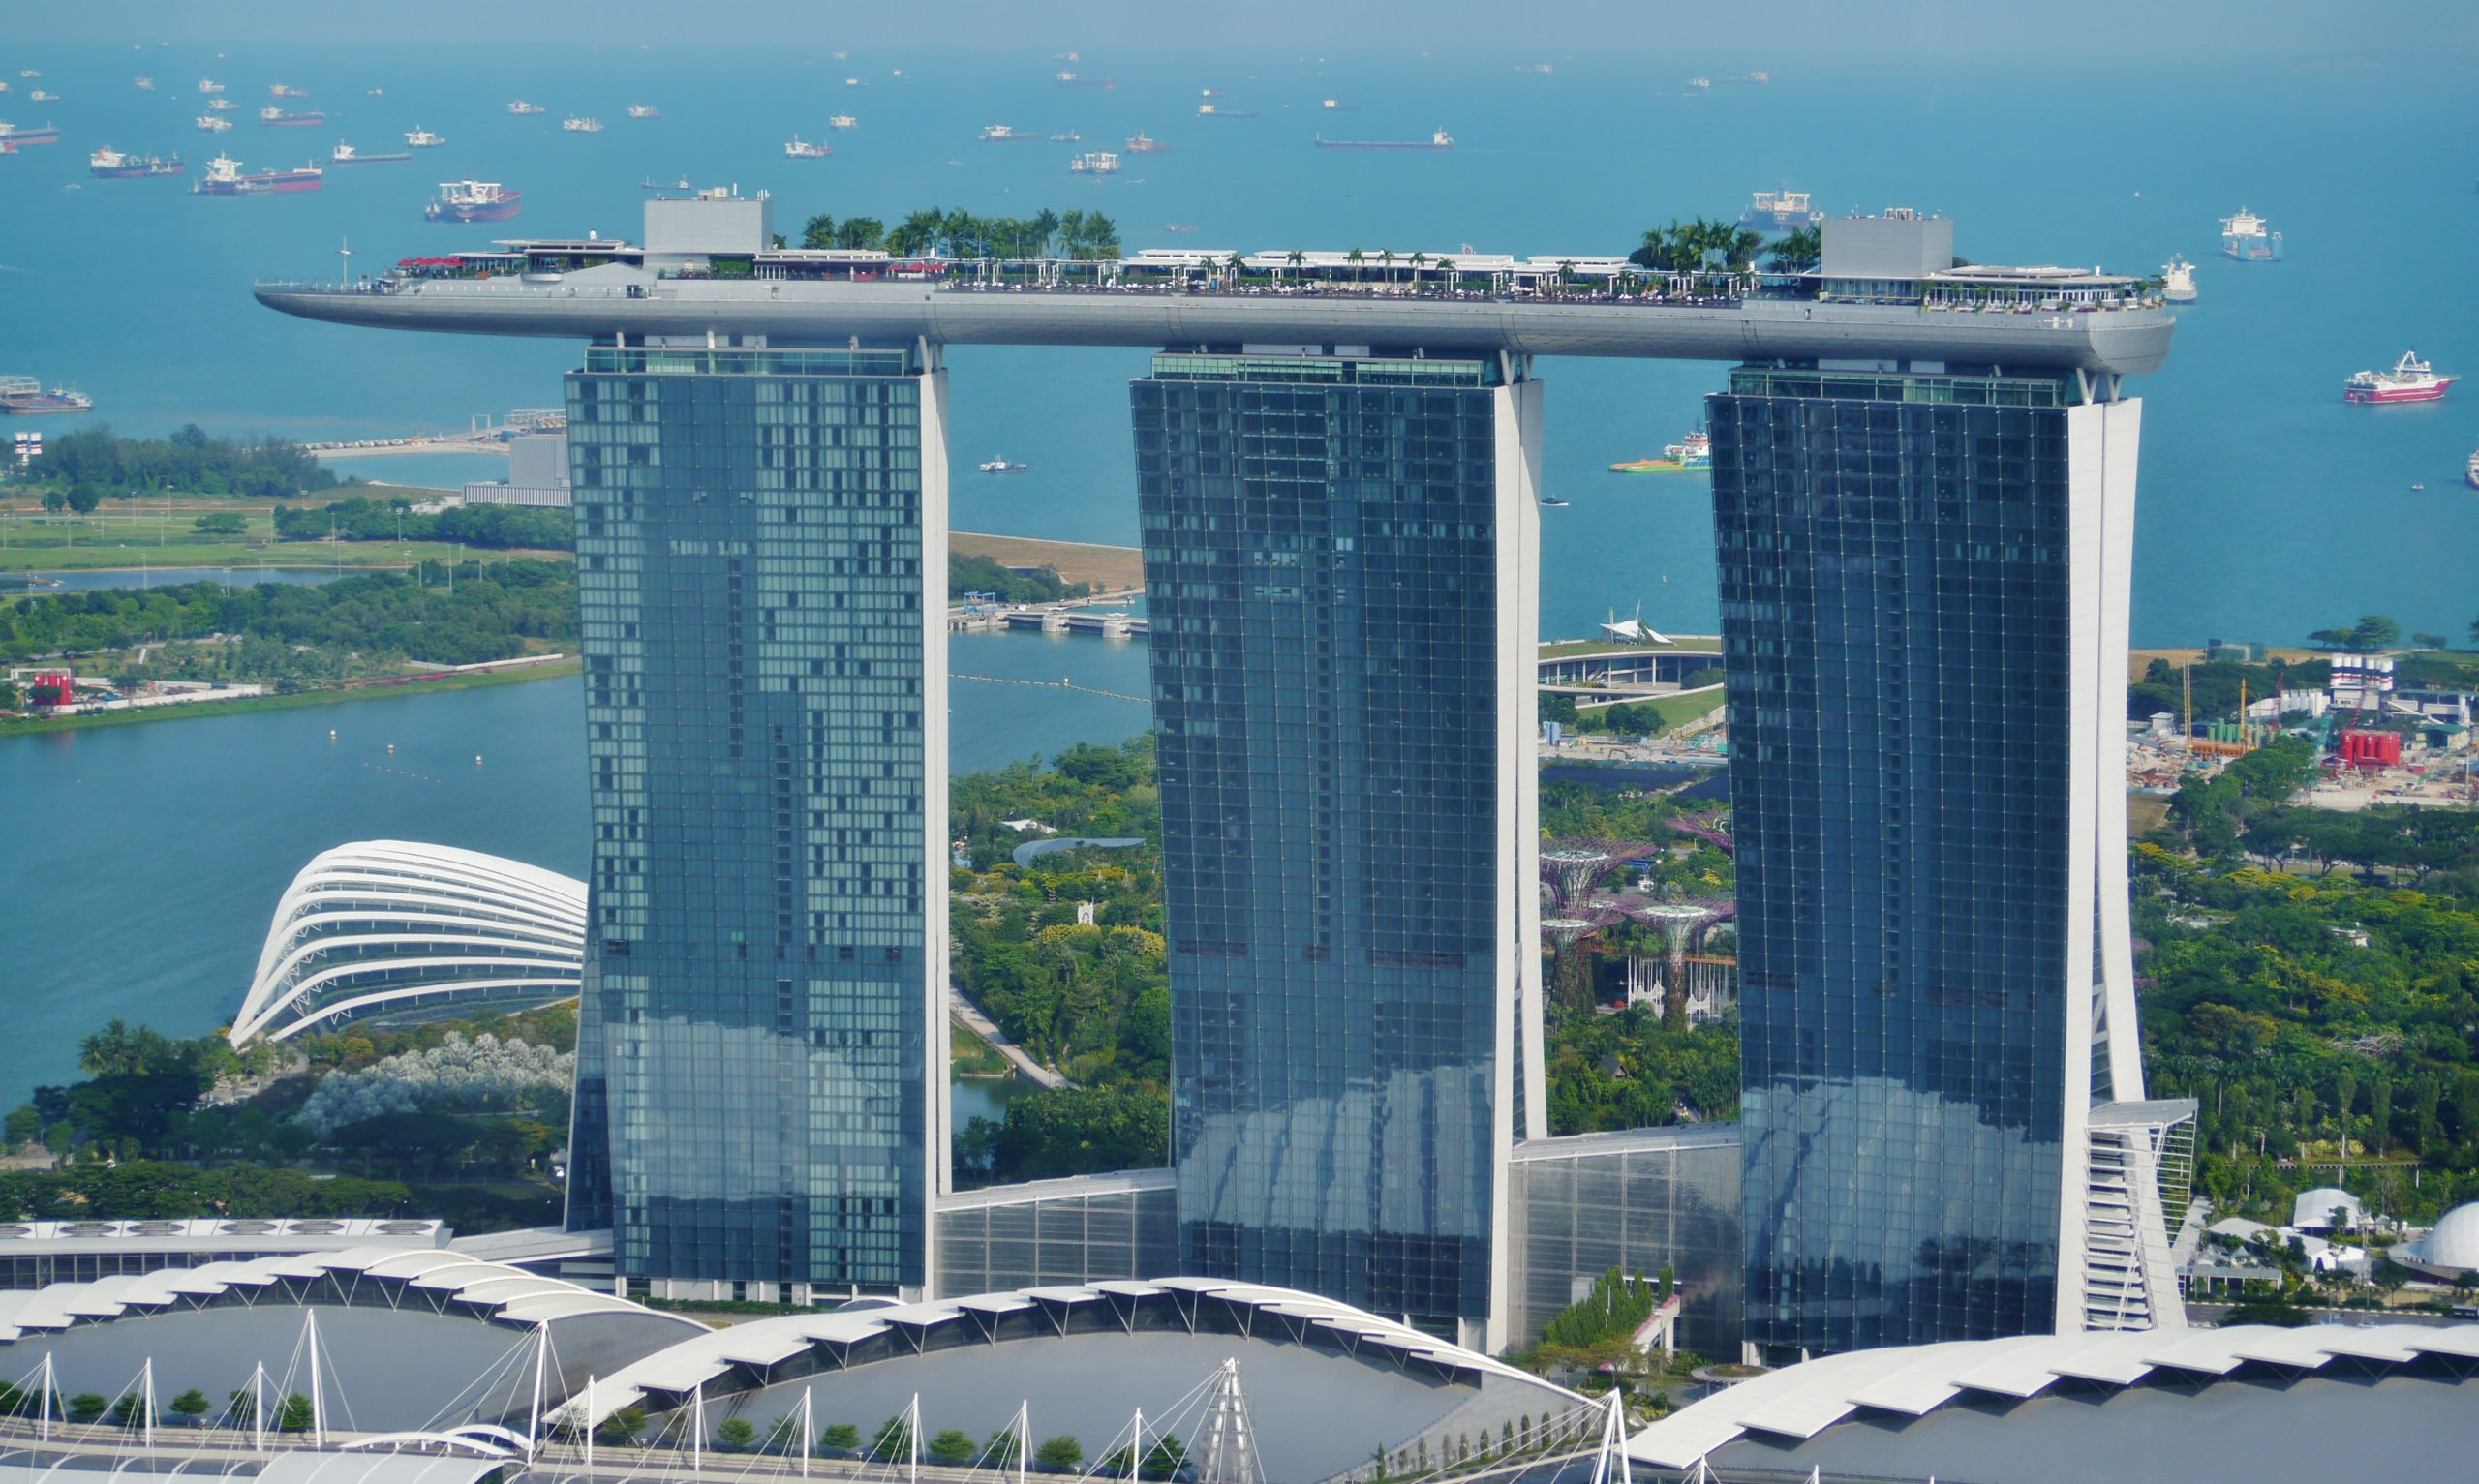 Spectacular Place in Singapore-Marina Bay